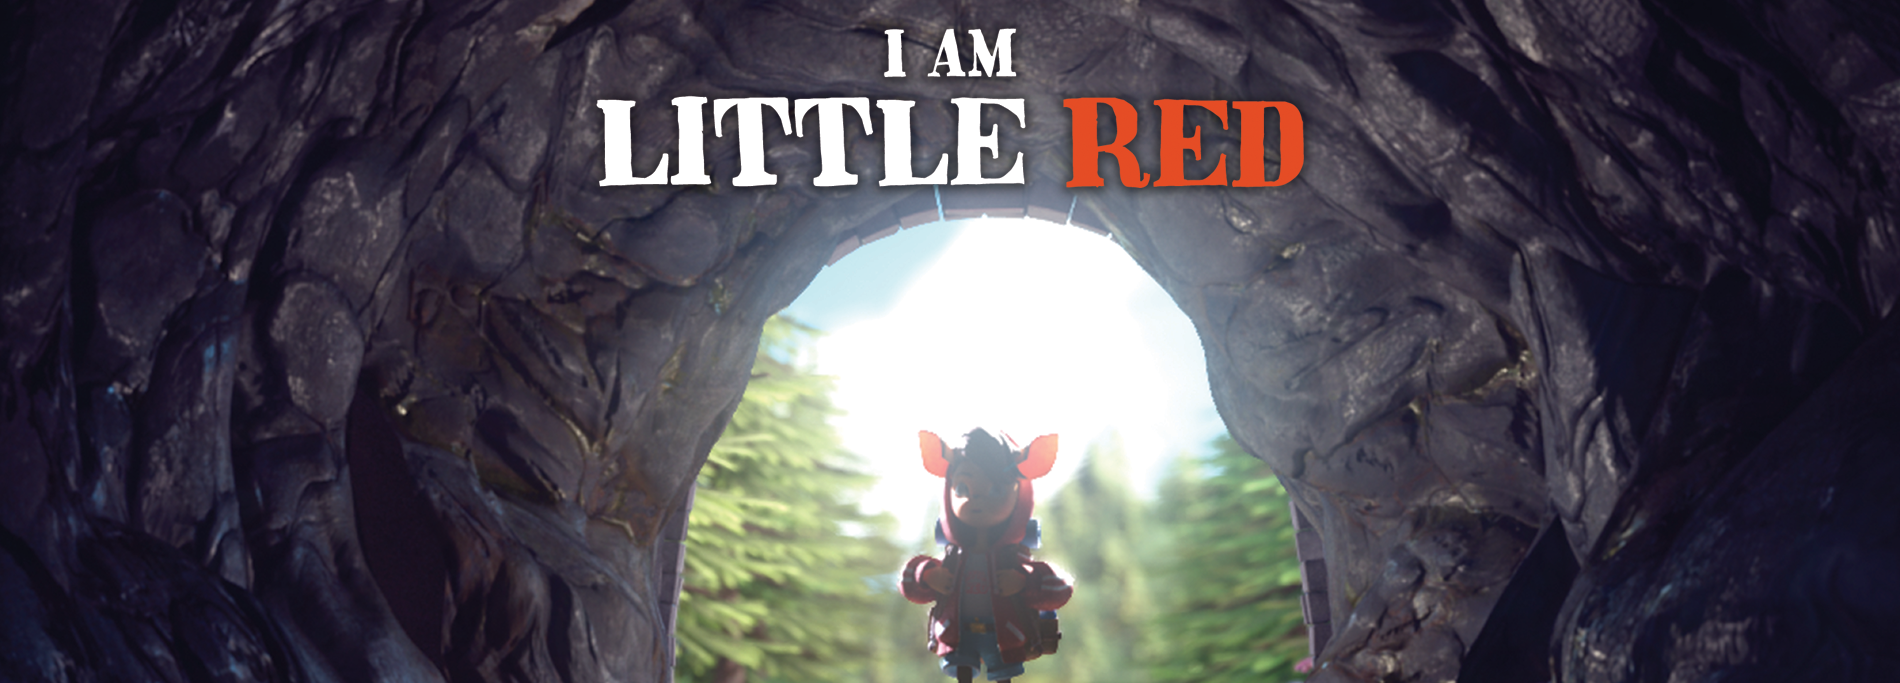 I AM LITTLE RED trailer photo